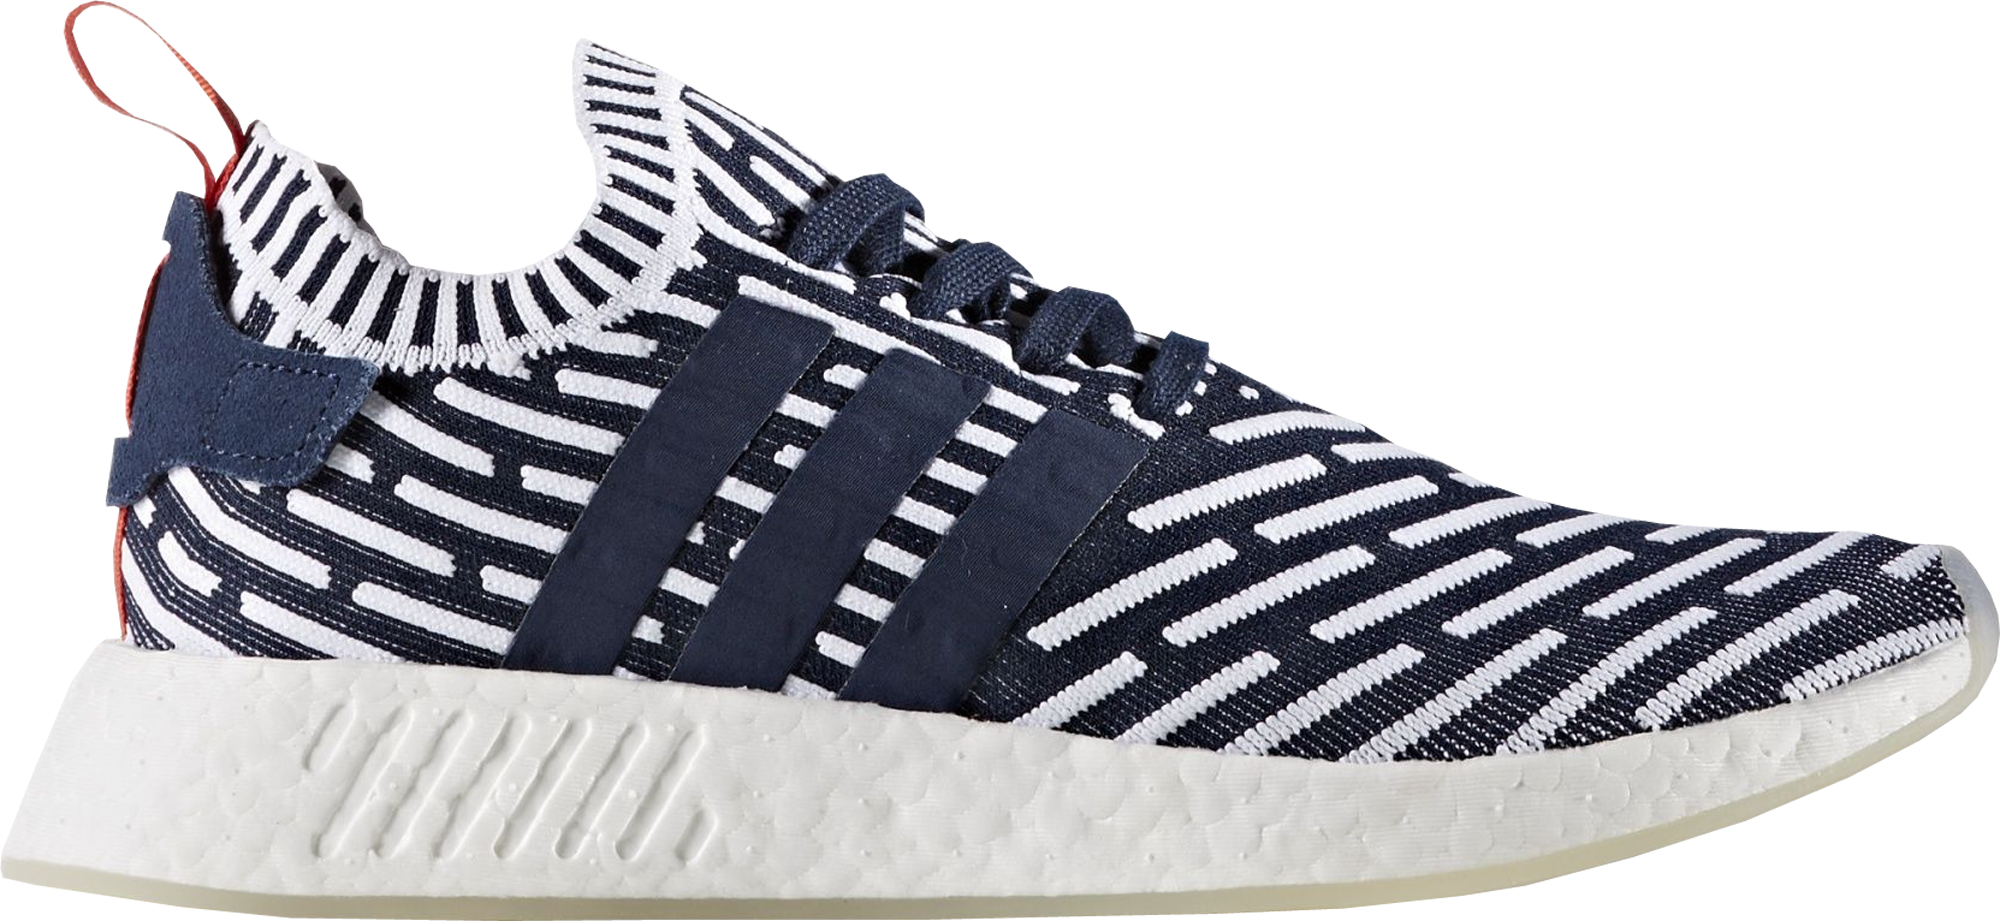 a180cd8aa adidas NMD R2 Navy White Primeknit Two-Toned